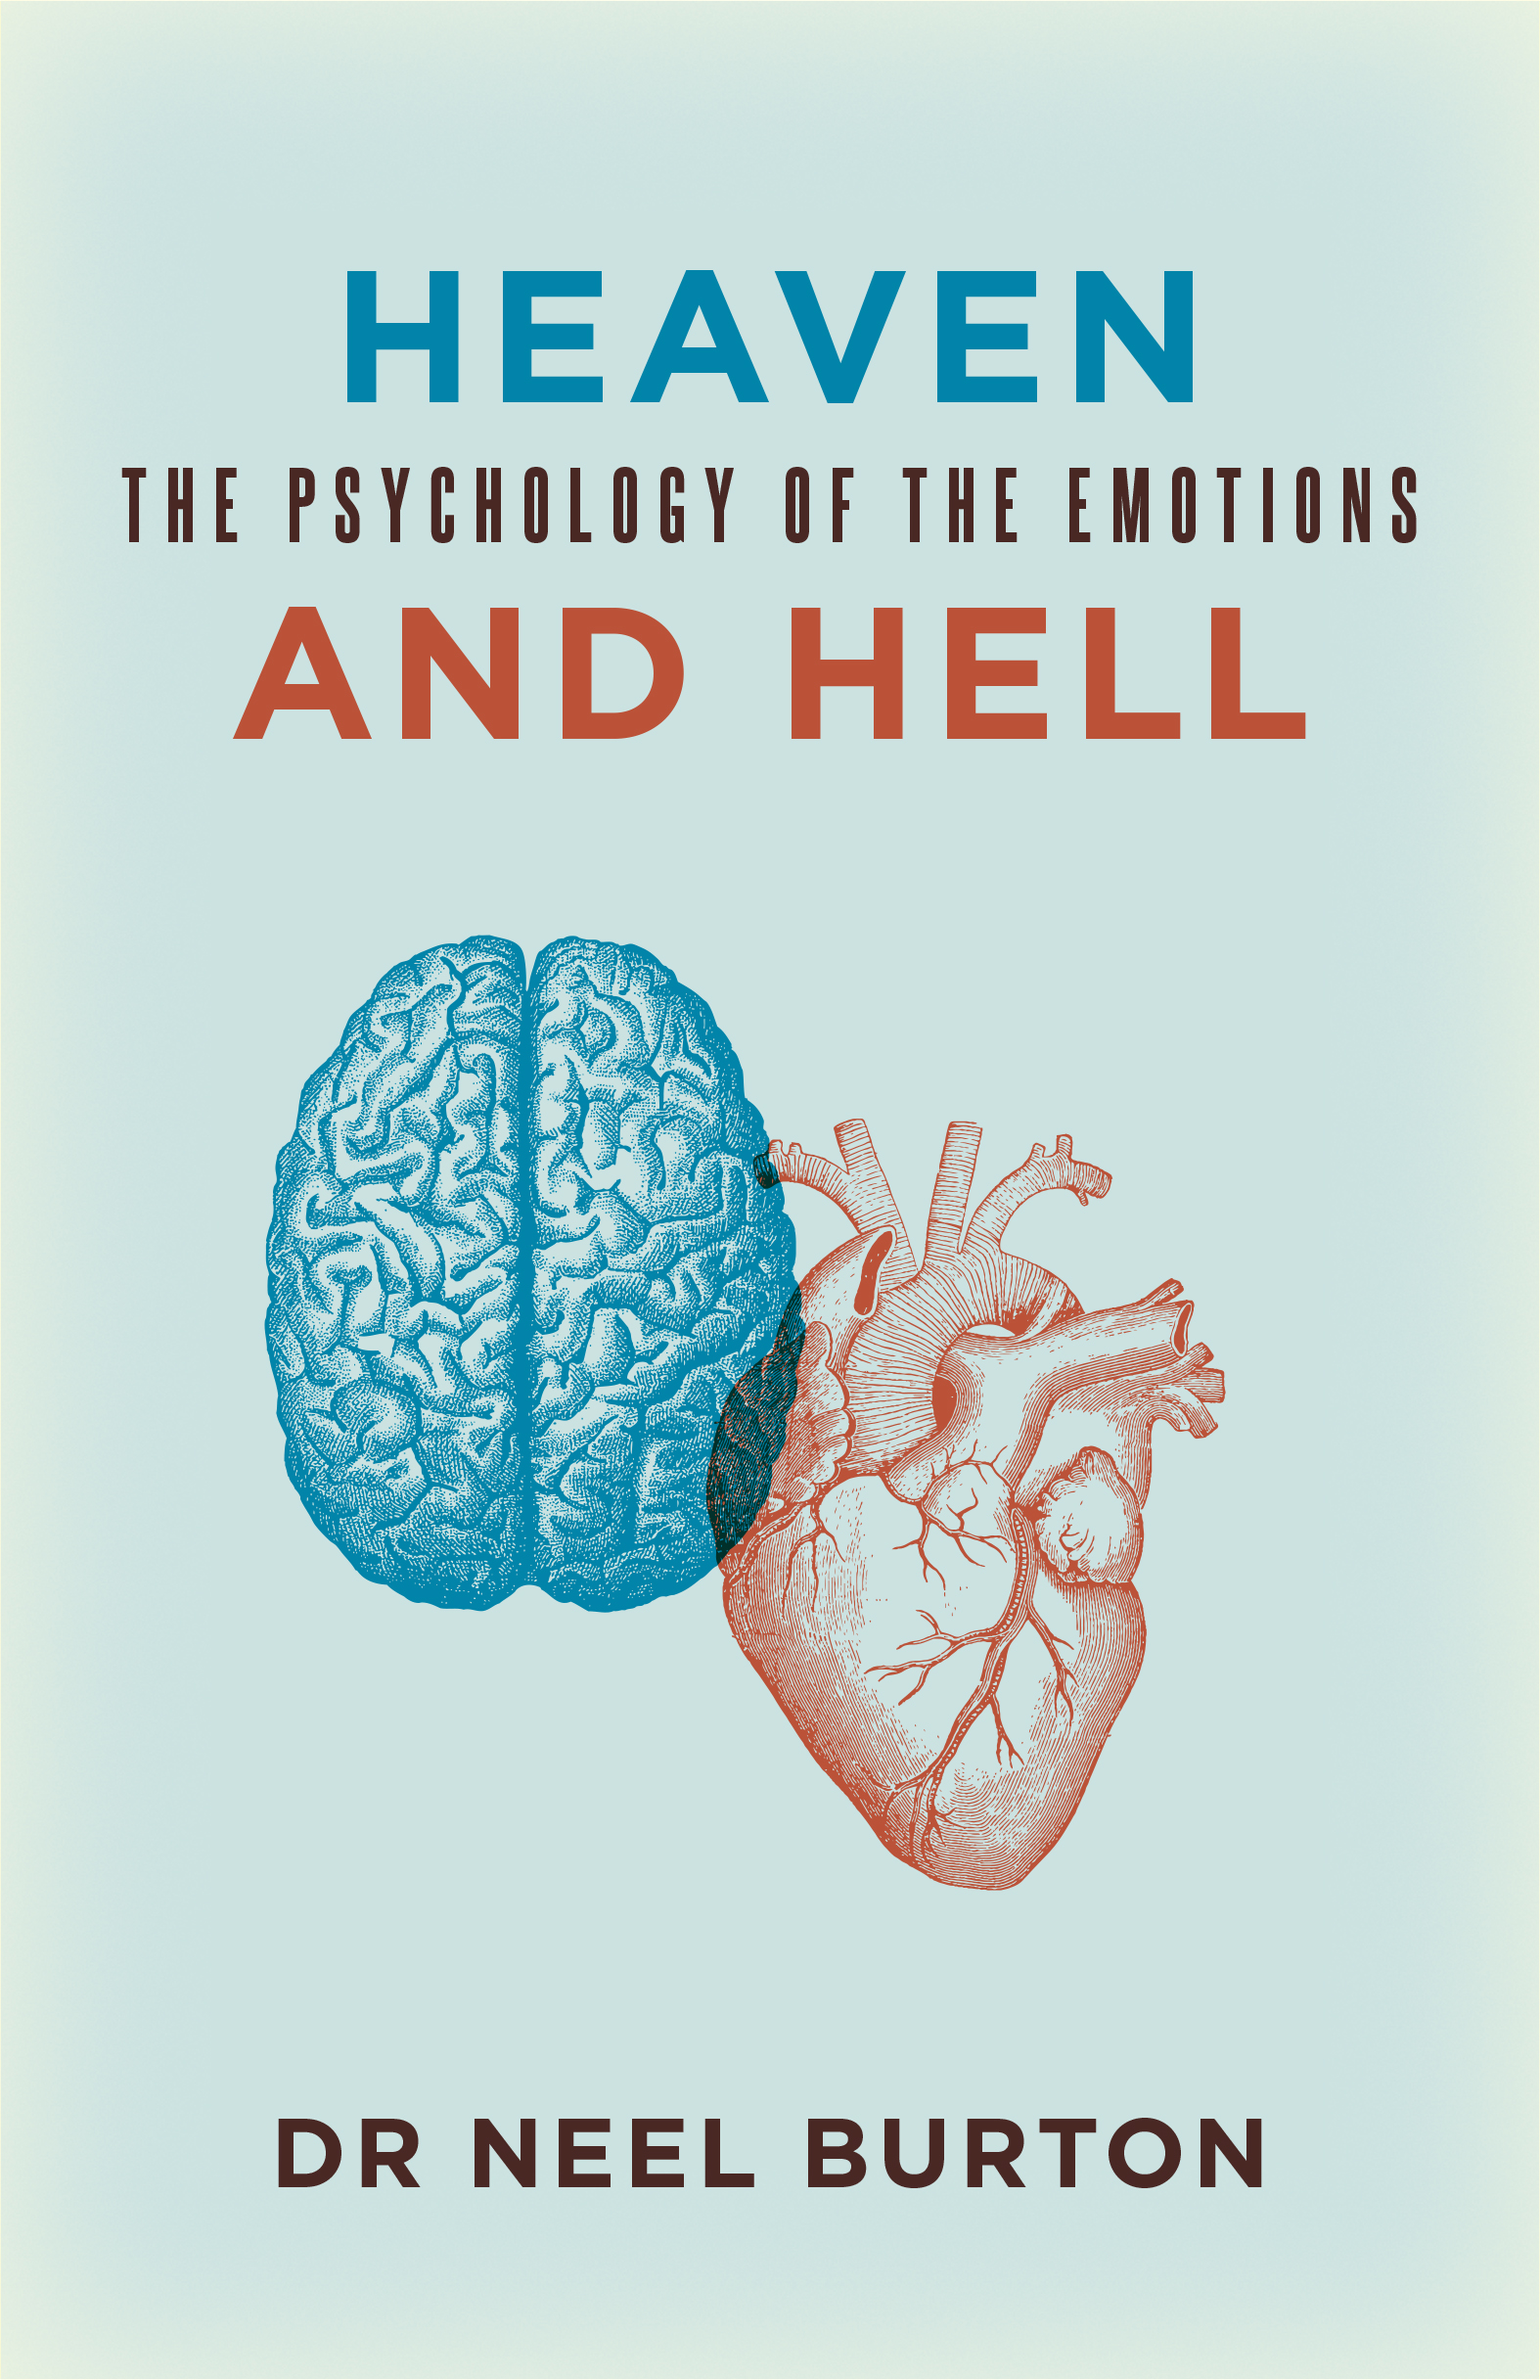 the emotional recognition and empathy psychology essay Emotional intelligence (ei), emotional leadership (el), emotional quotient (eq) and emotional intelligence quotient (eiq), is the capability of individuals to recognize their own emotions and those of others, discern between different feelings and label them appropriately, use emotional information to guide thinking and behavior, and manage and.